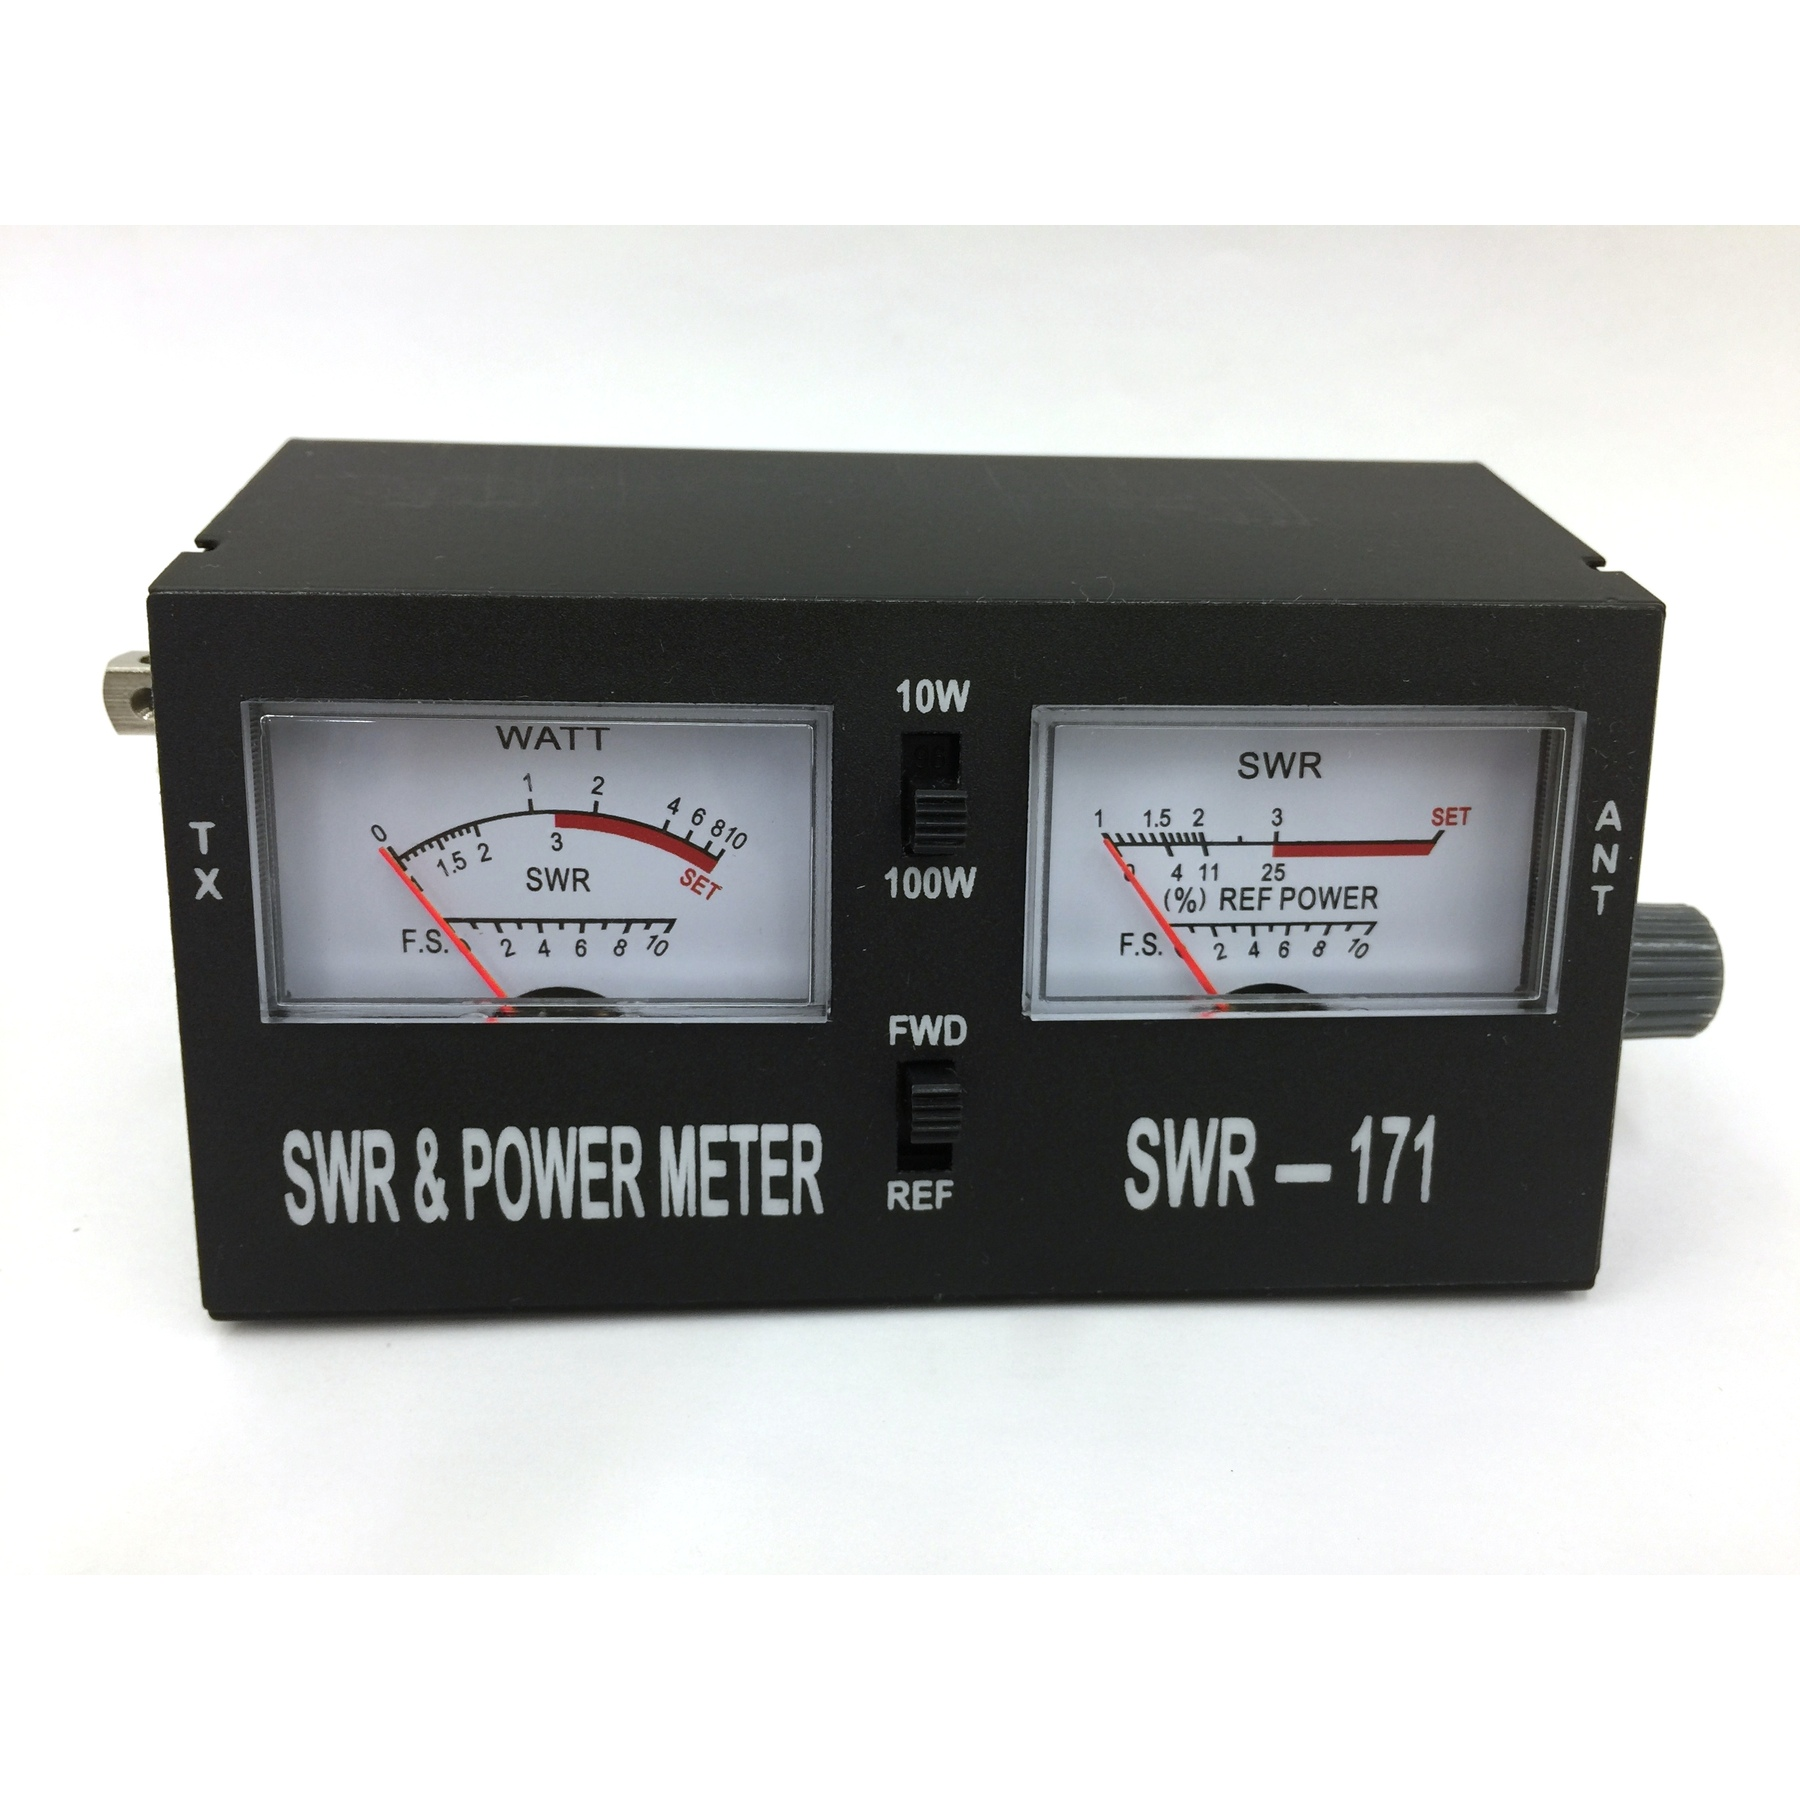 Meter SWR Swr-171. Measuring Instrument To Adjust Antenna Radios